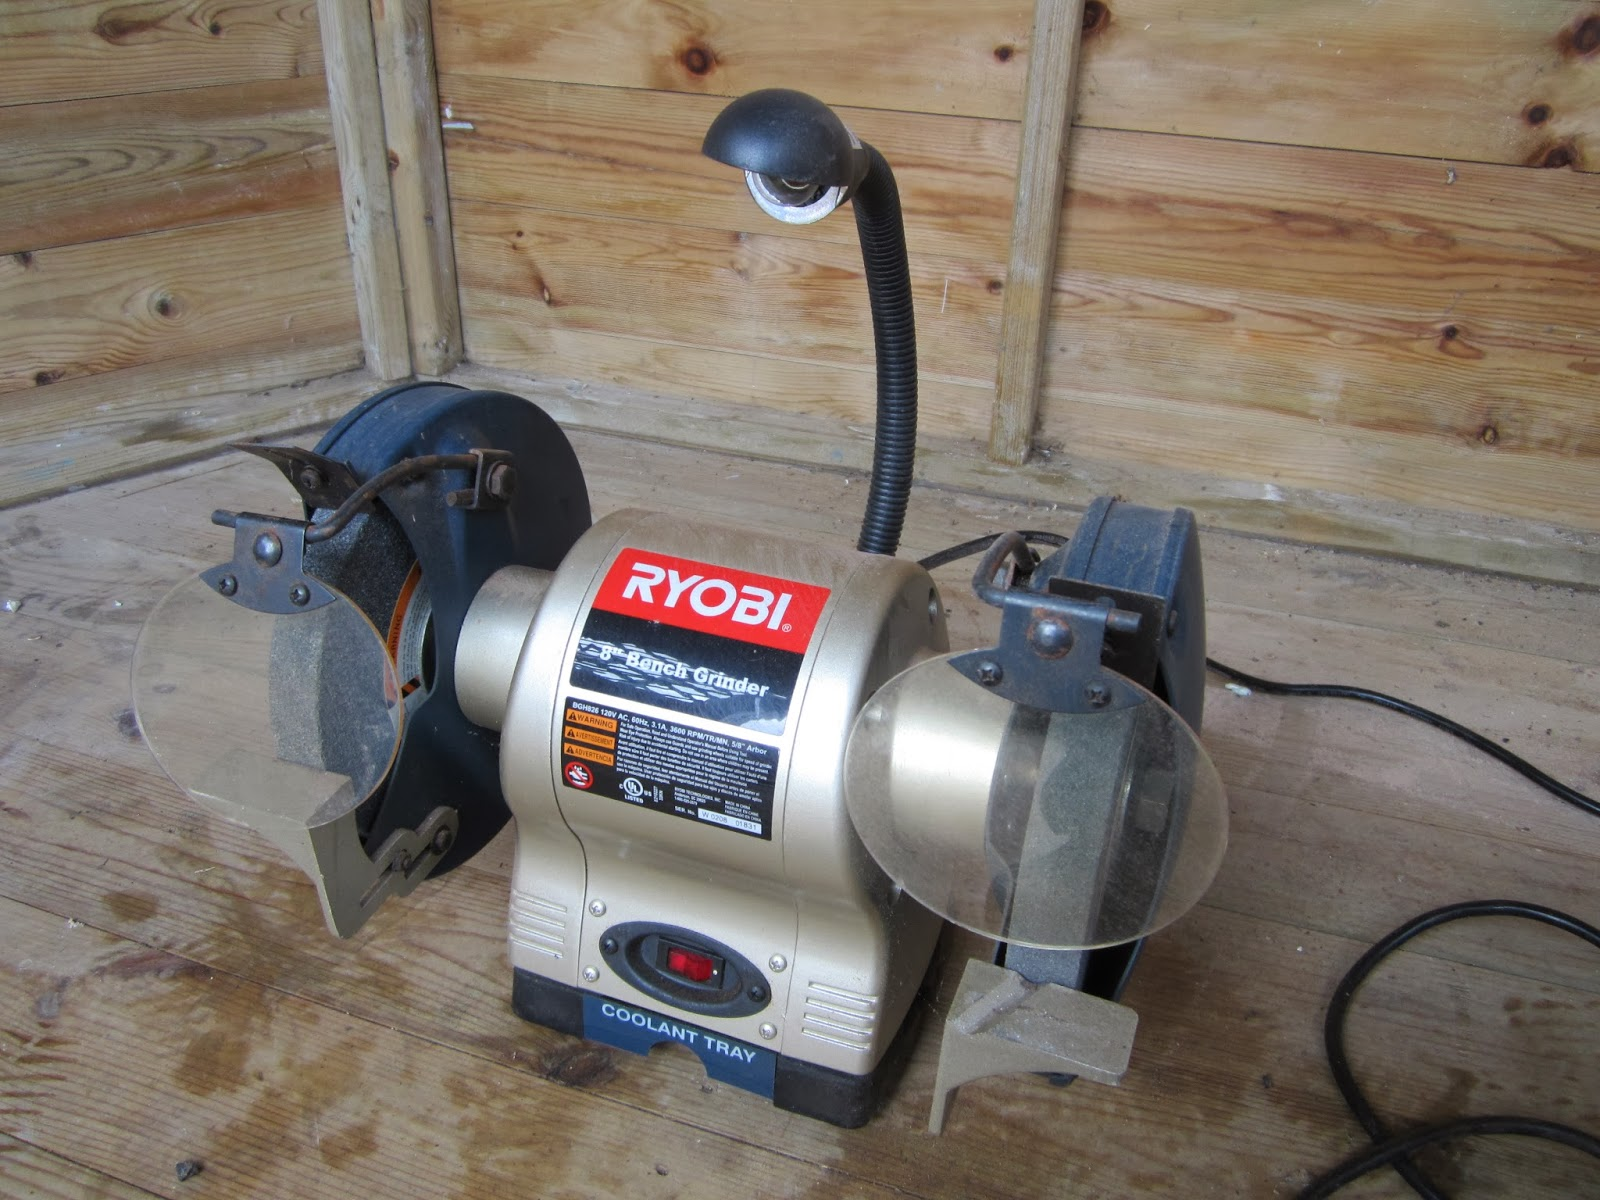 120v Equipment In The Uk Ryobi Bgh826 8 Quot Bench Grinder